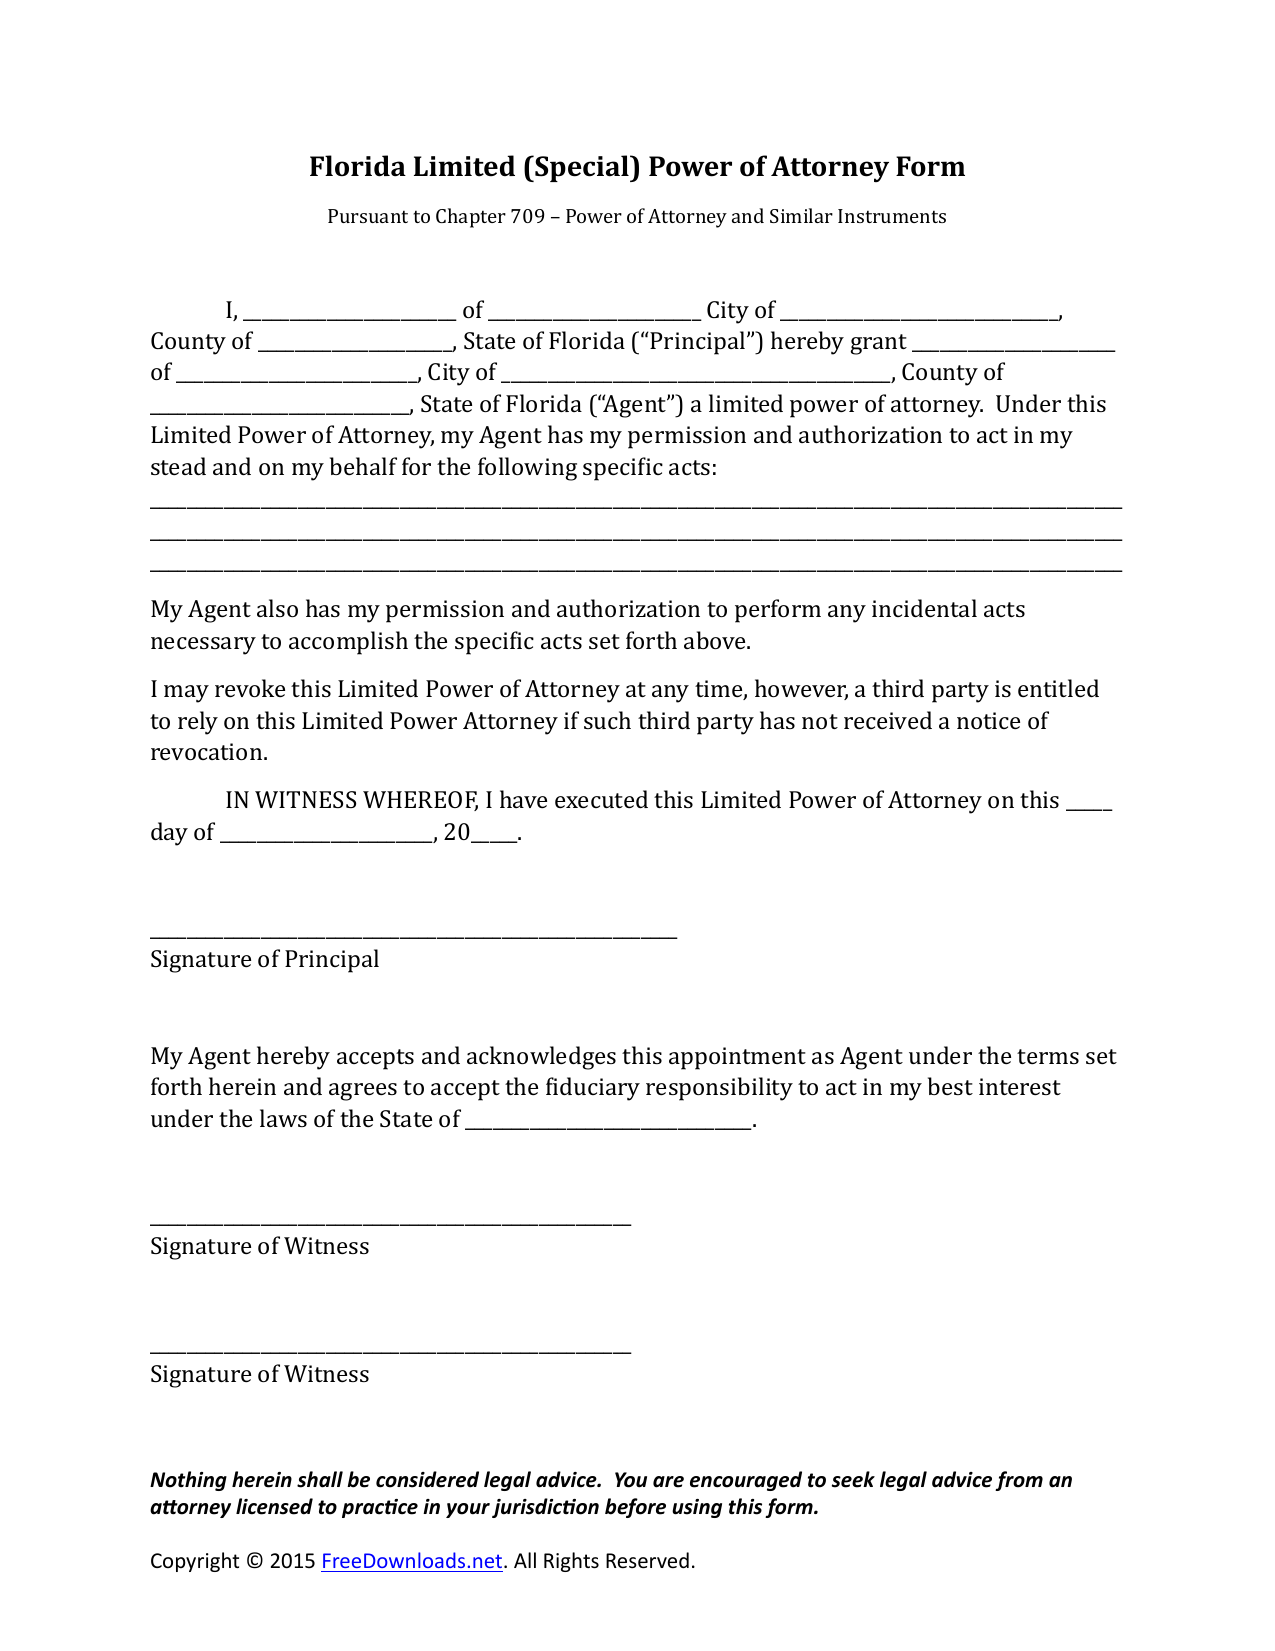 Download florida special limited power of attorney form for Special power of attorney template free